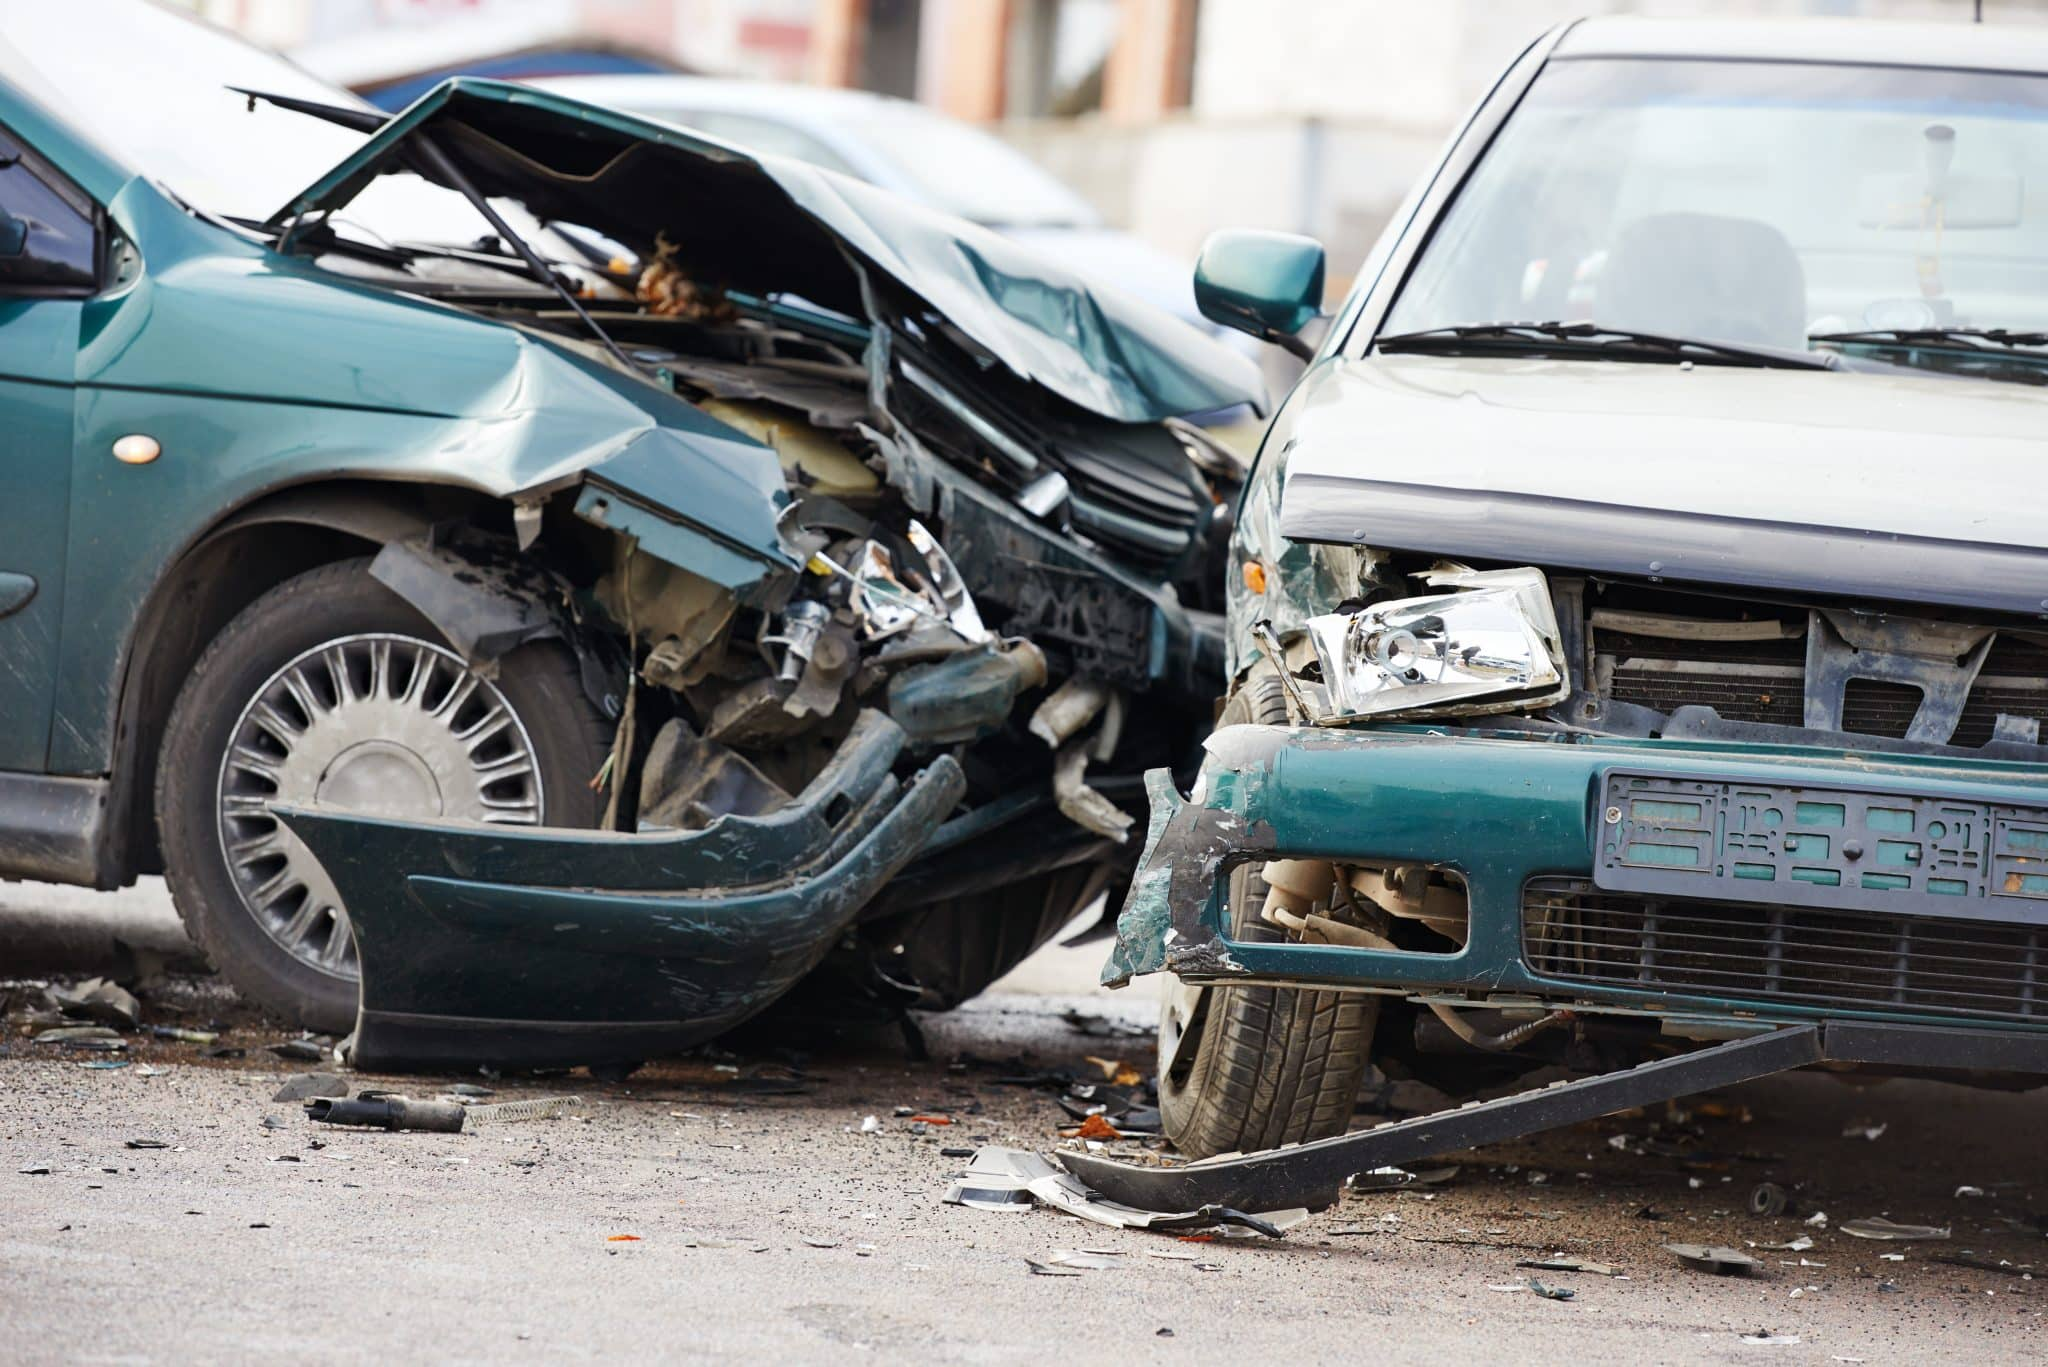 Auto Accident Lawyer in Pasco, Washington - Fielding Law Group